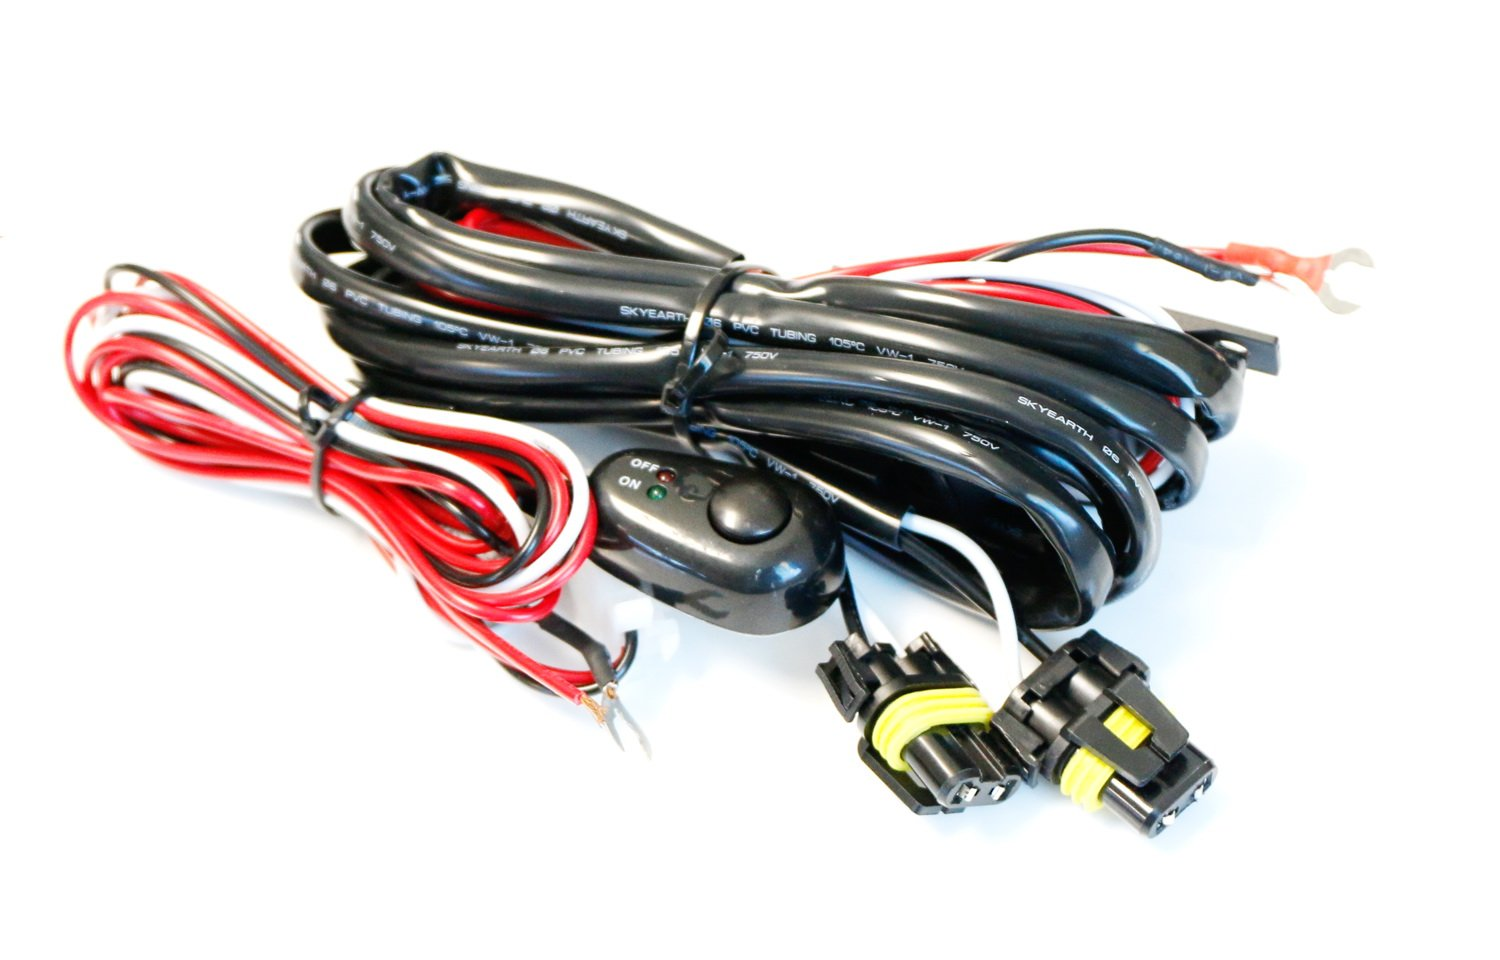 Ijdmtoy 1 9005 9006 H10 Relay Harness Wire Kit With 1996 Honda Accord Wiring Drivers Led Light On Off Switch For Aftermarket Fog Lights Driving Hid Conversion